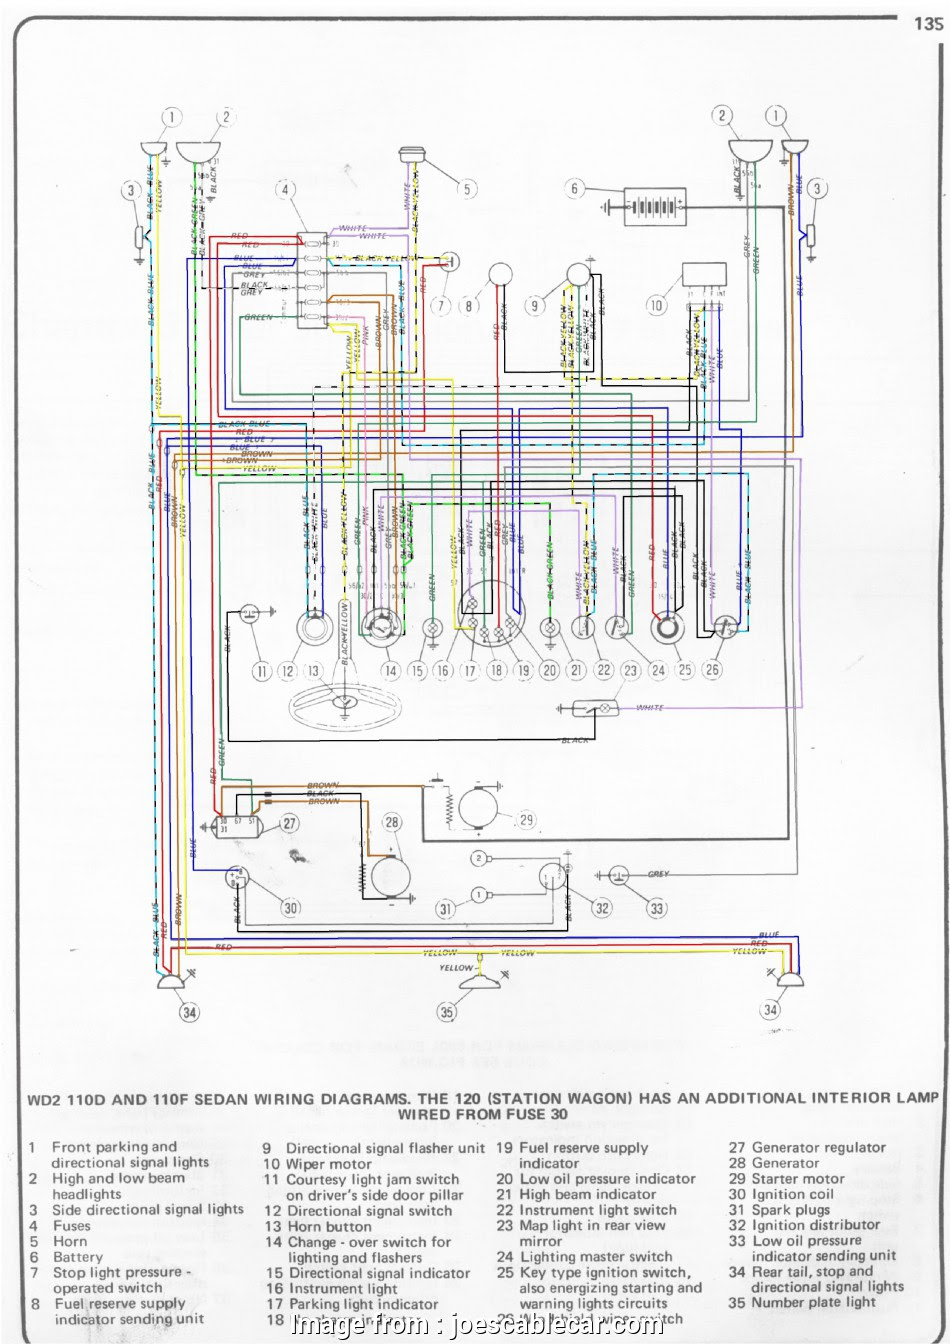 Wiring Diagram Yamaha, 135 Electrical Perfect Wiring ...